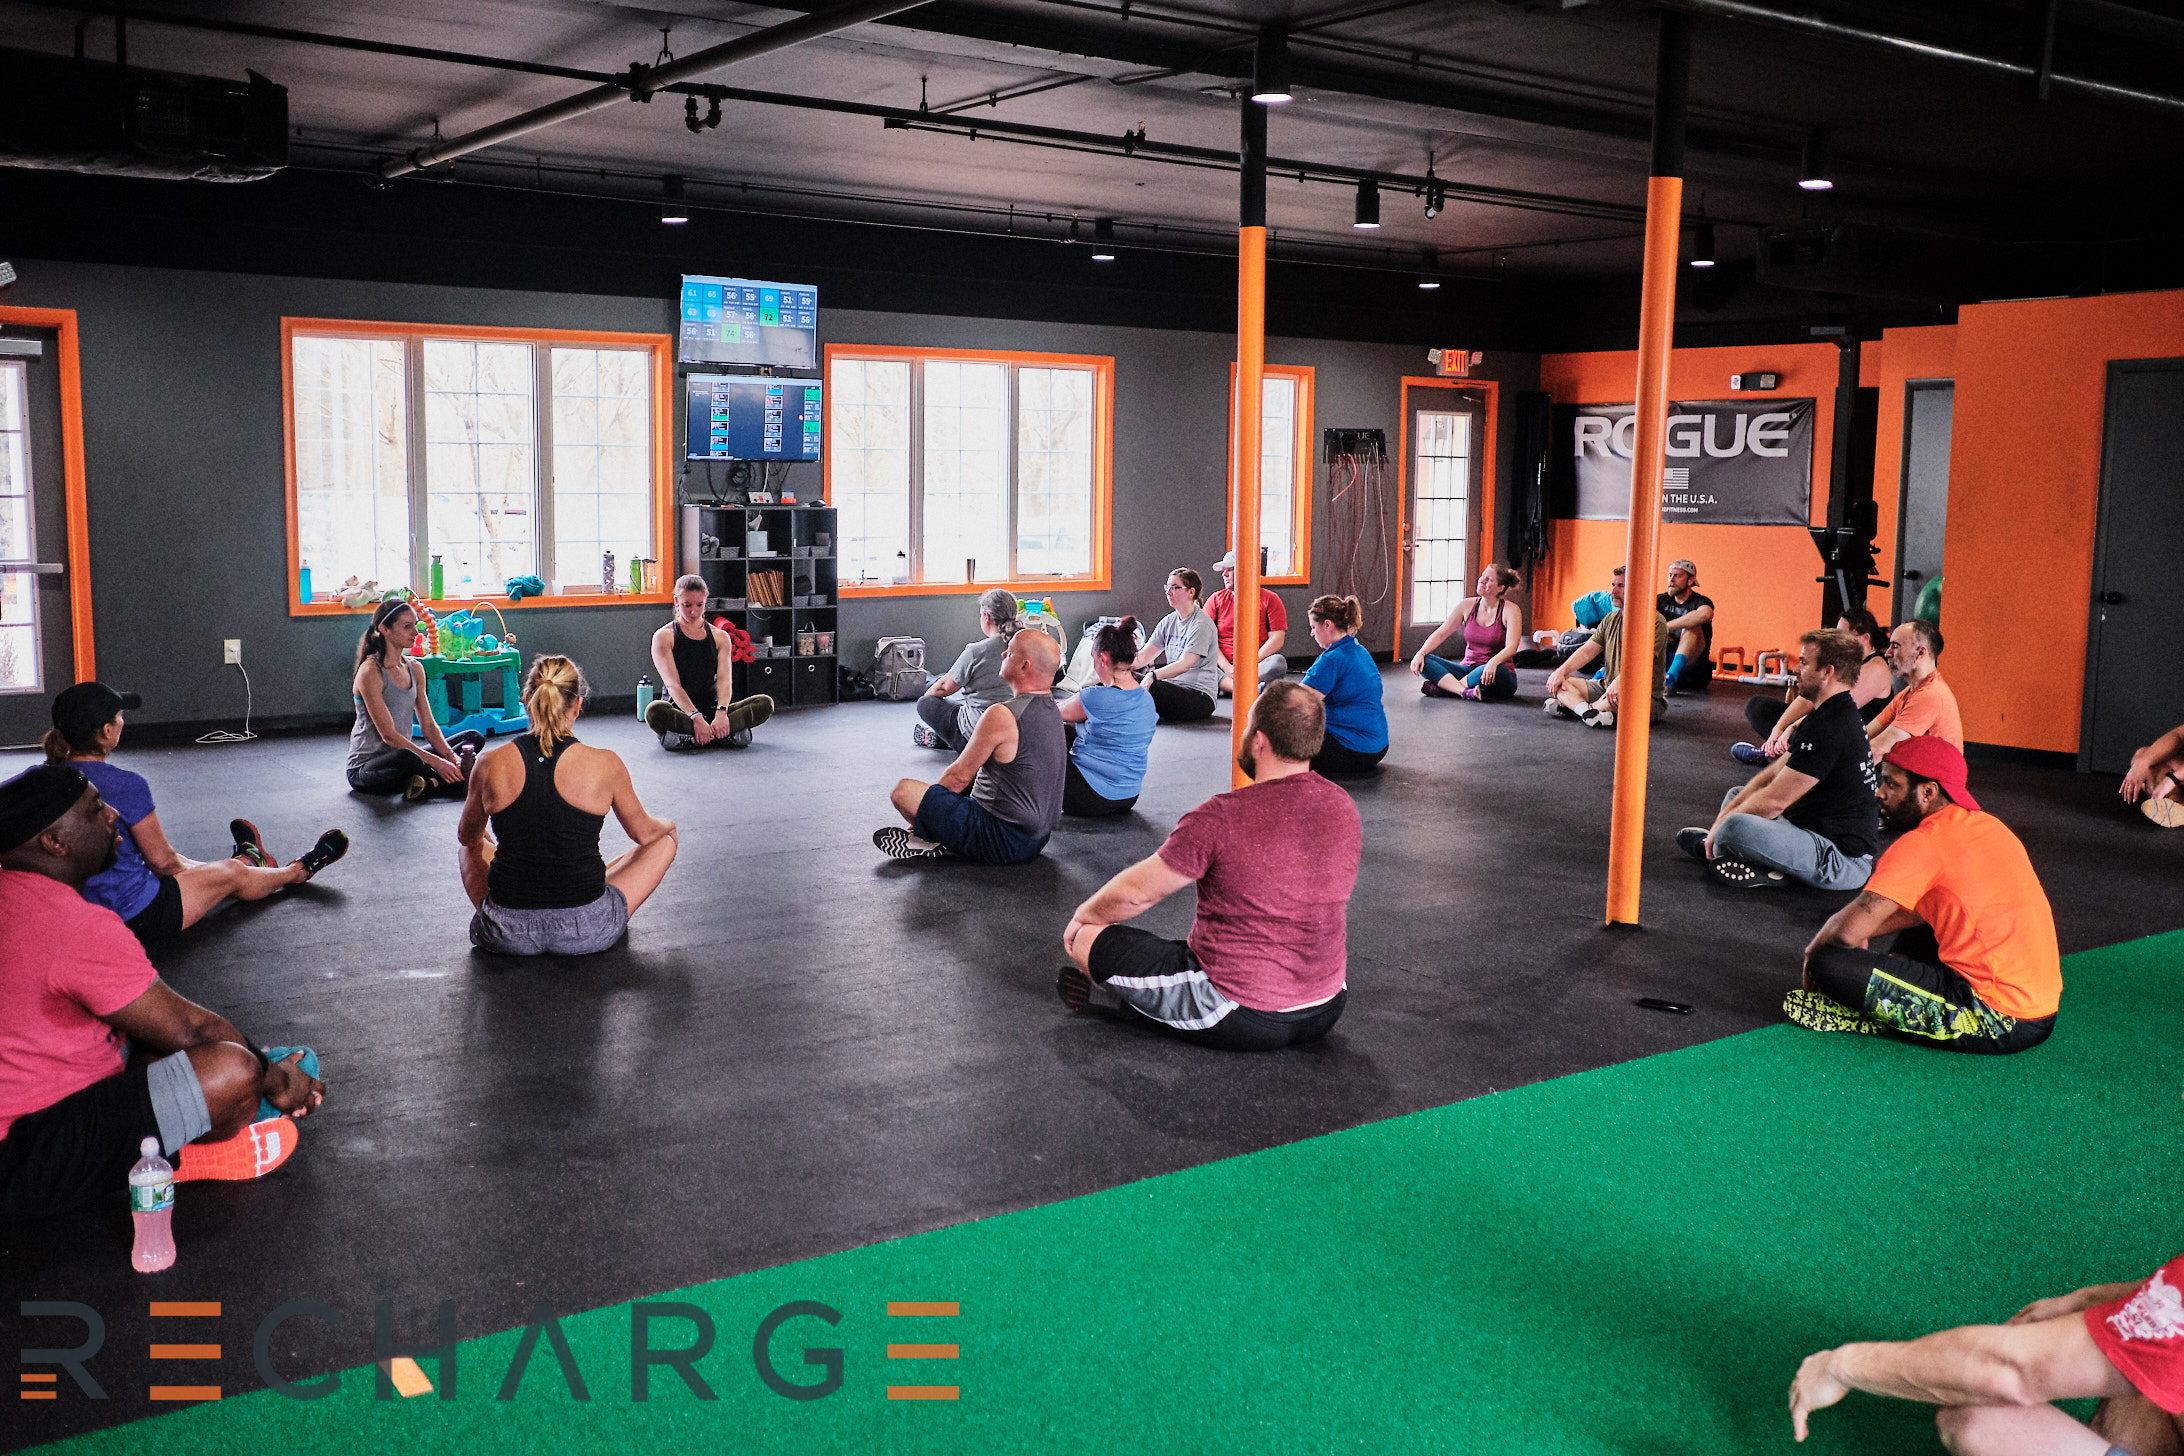 RECHARGE GYM, Physical therapy, postpartum health in ellicott city